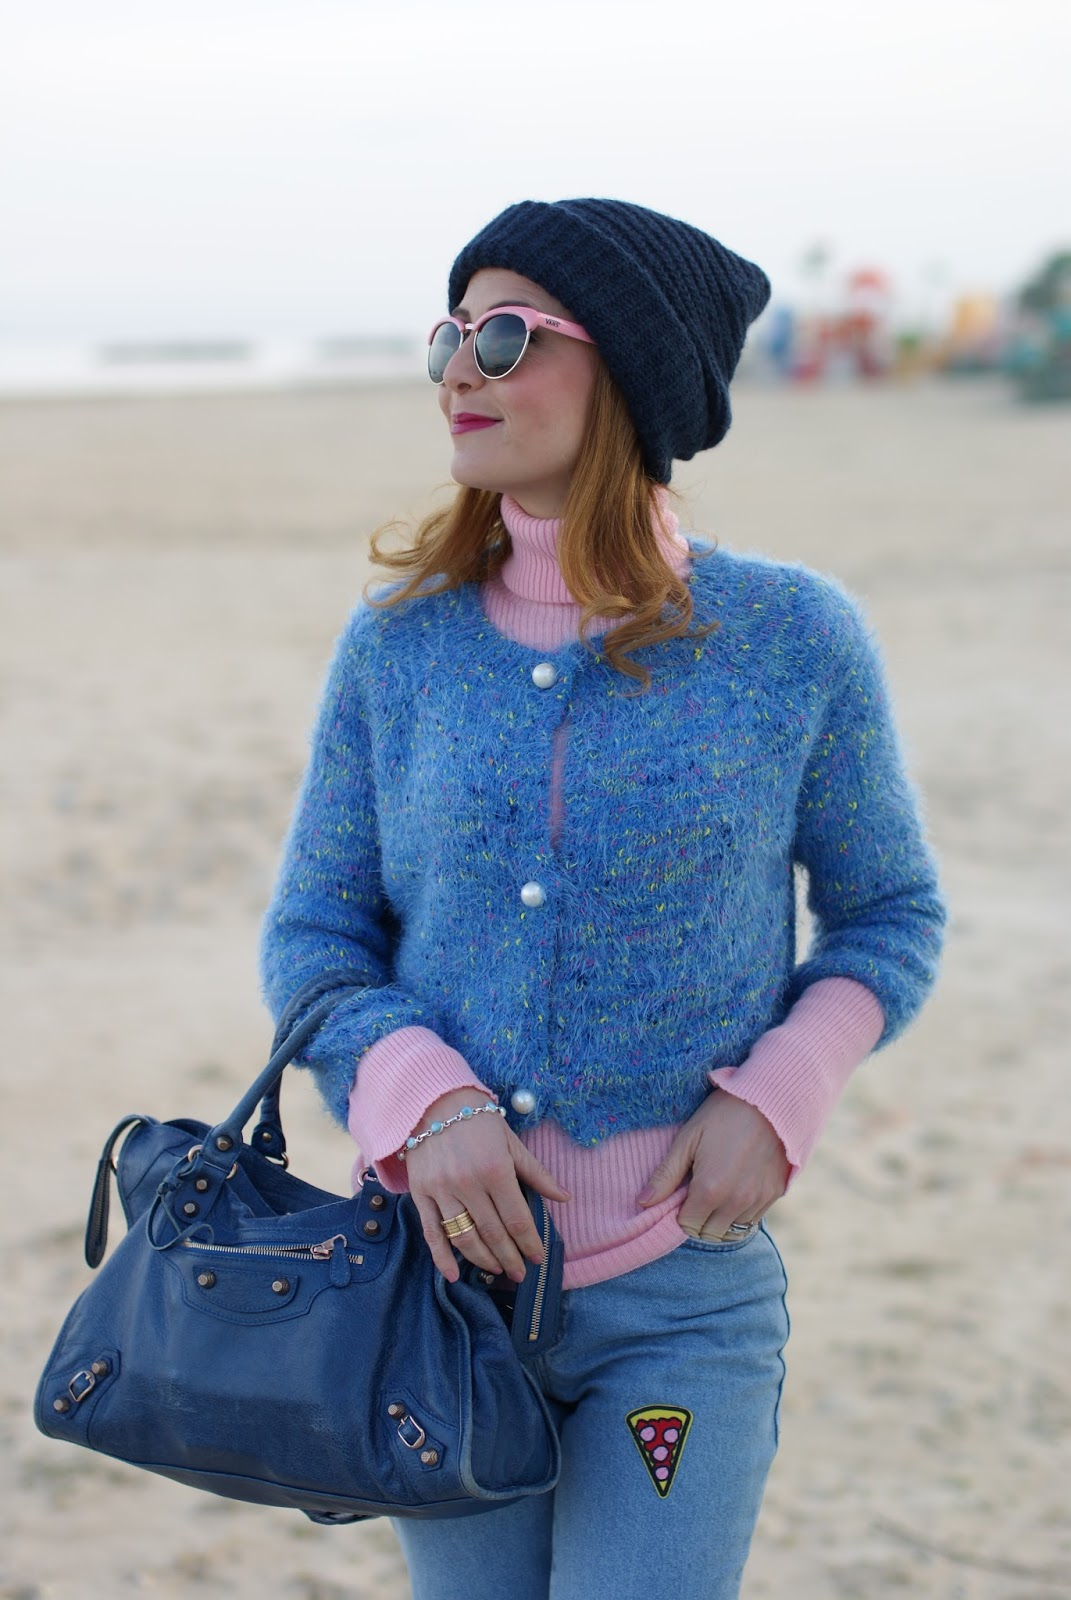 Mom patched jeans, pink turtleneck, Balenciaga bag on Fashion and Cookies fashion blog, fashion blogger style